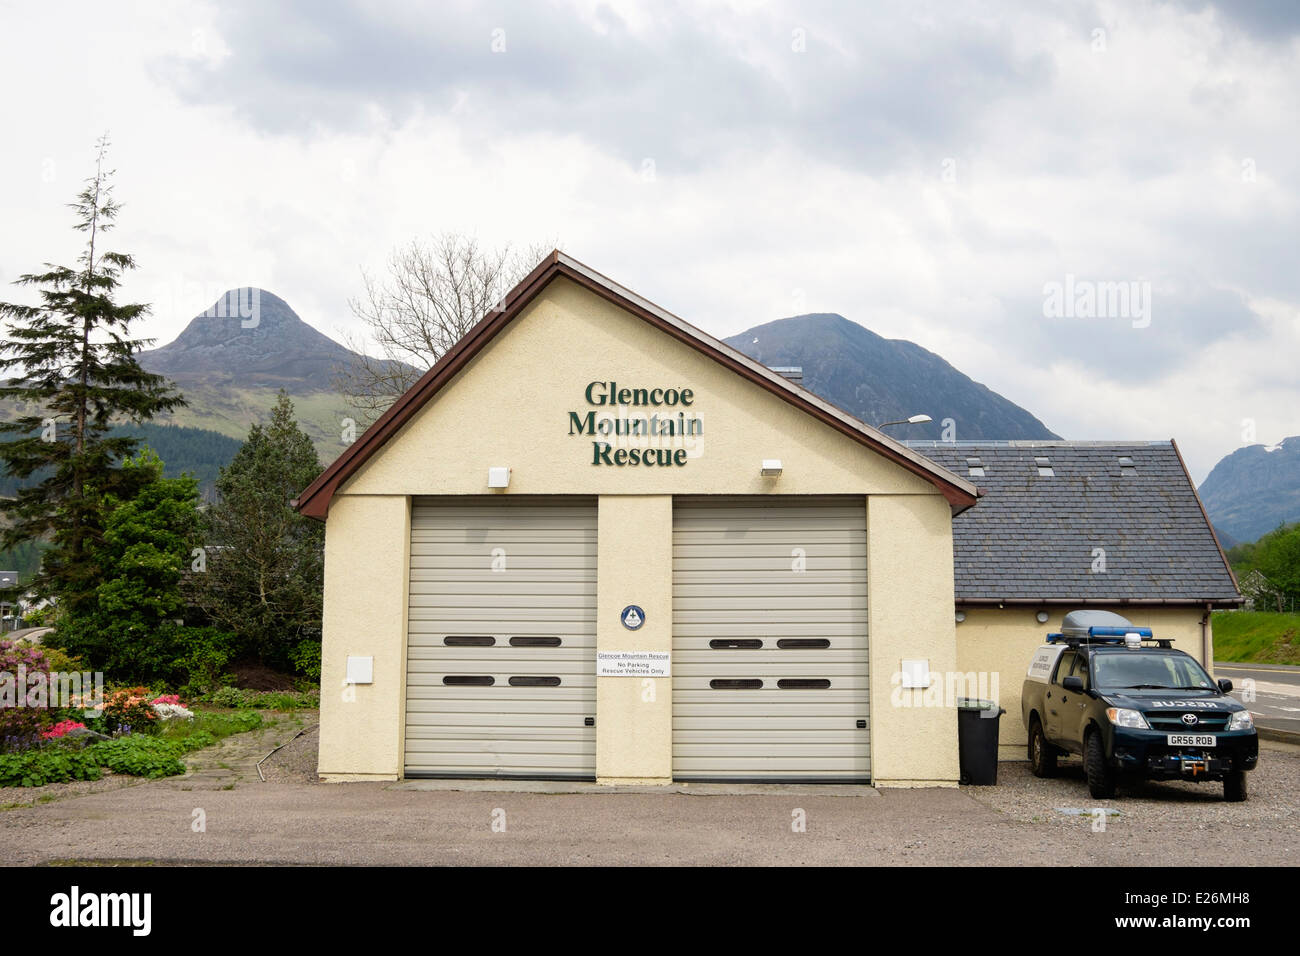 Glencoe Mountain Rescue HQ and rescue vehicle in Glencoe village, Highland, Scotland, UK, Britain - Stock Image